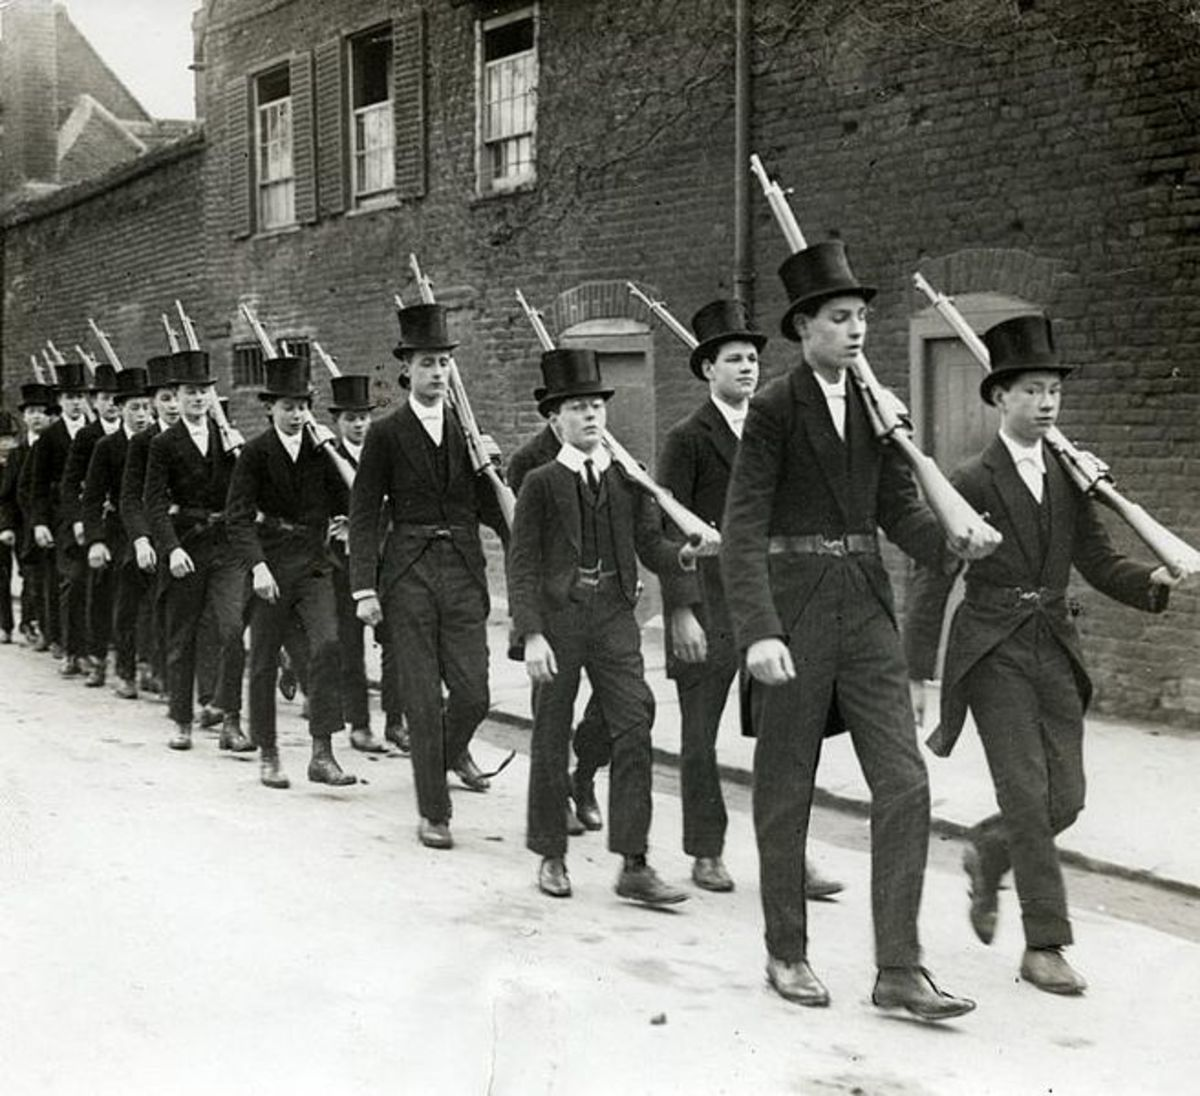 Boys of Eton College practice drill in 1915.